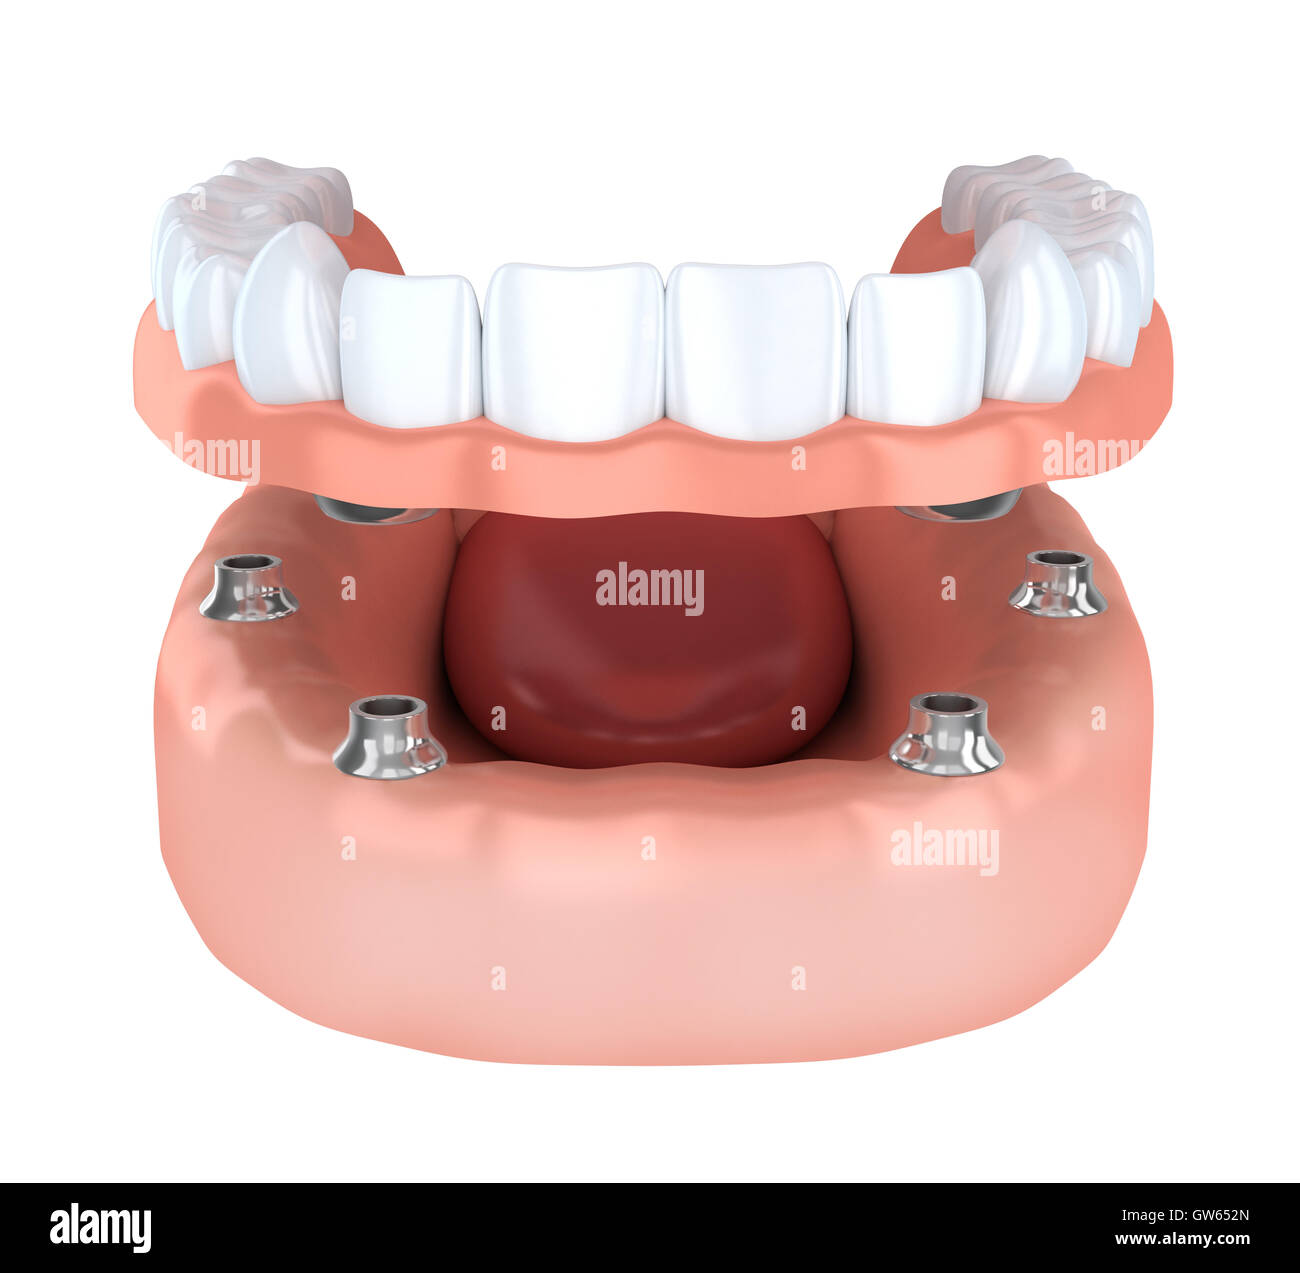 Tooth humman implantation, denture (done in 3d rendering) - Stock Image